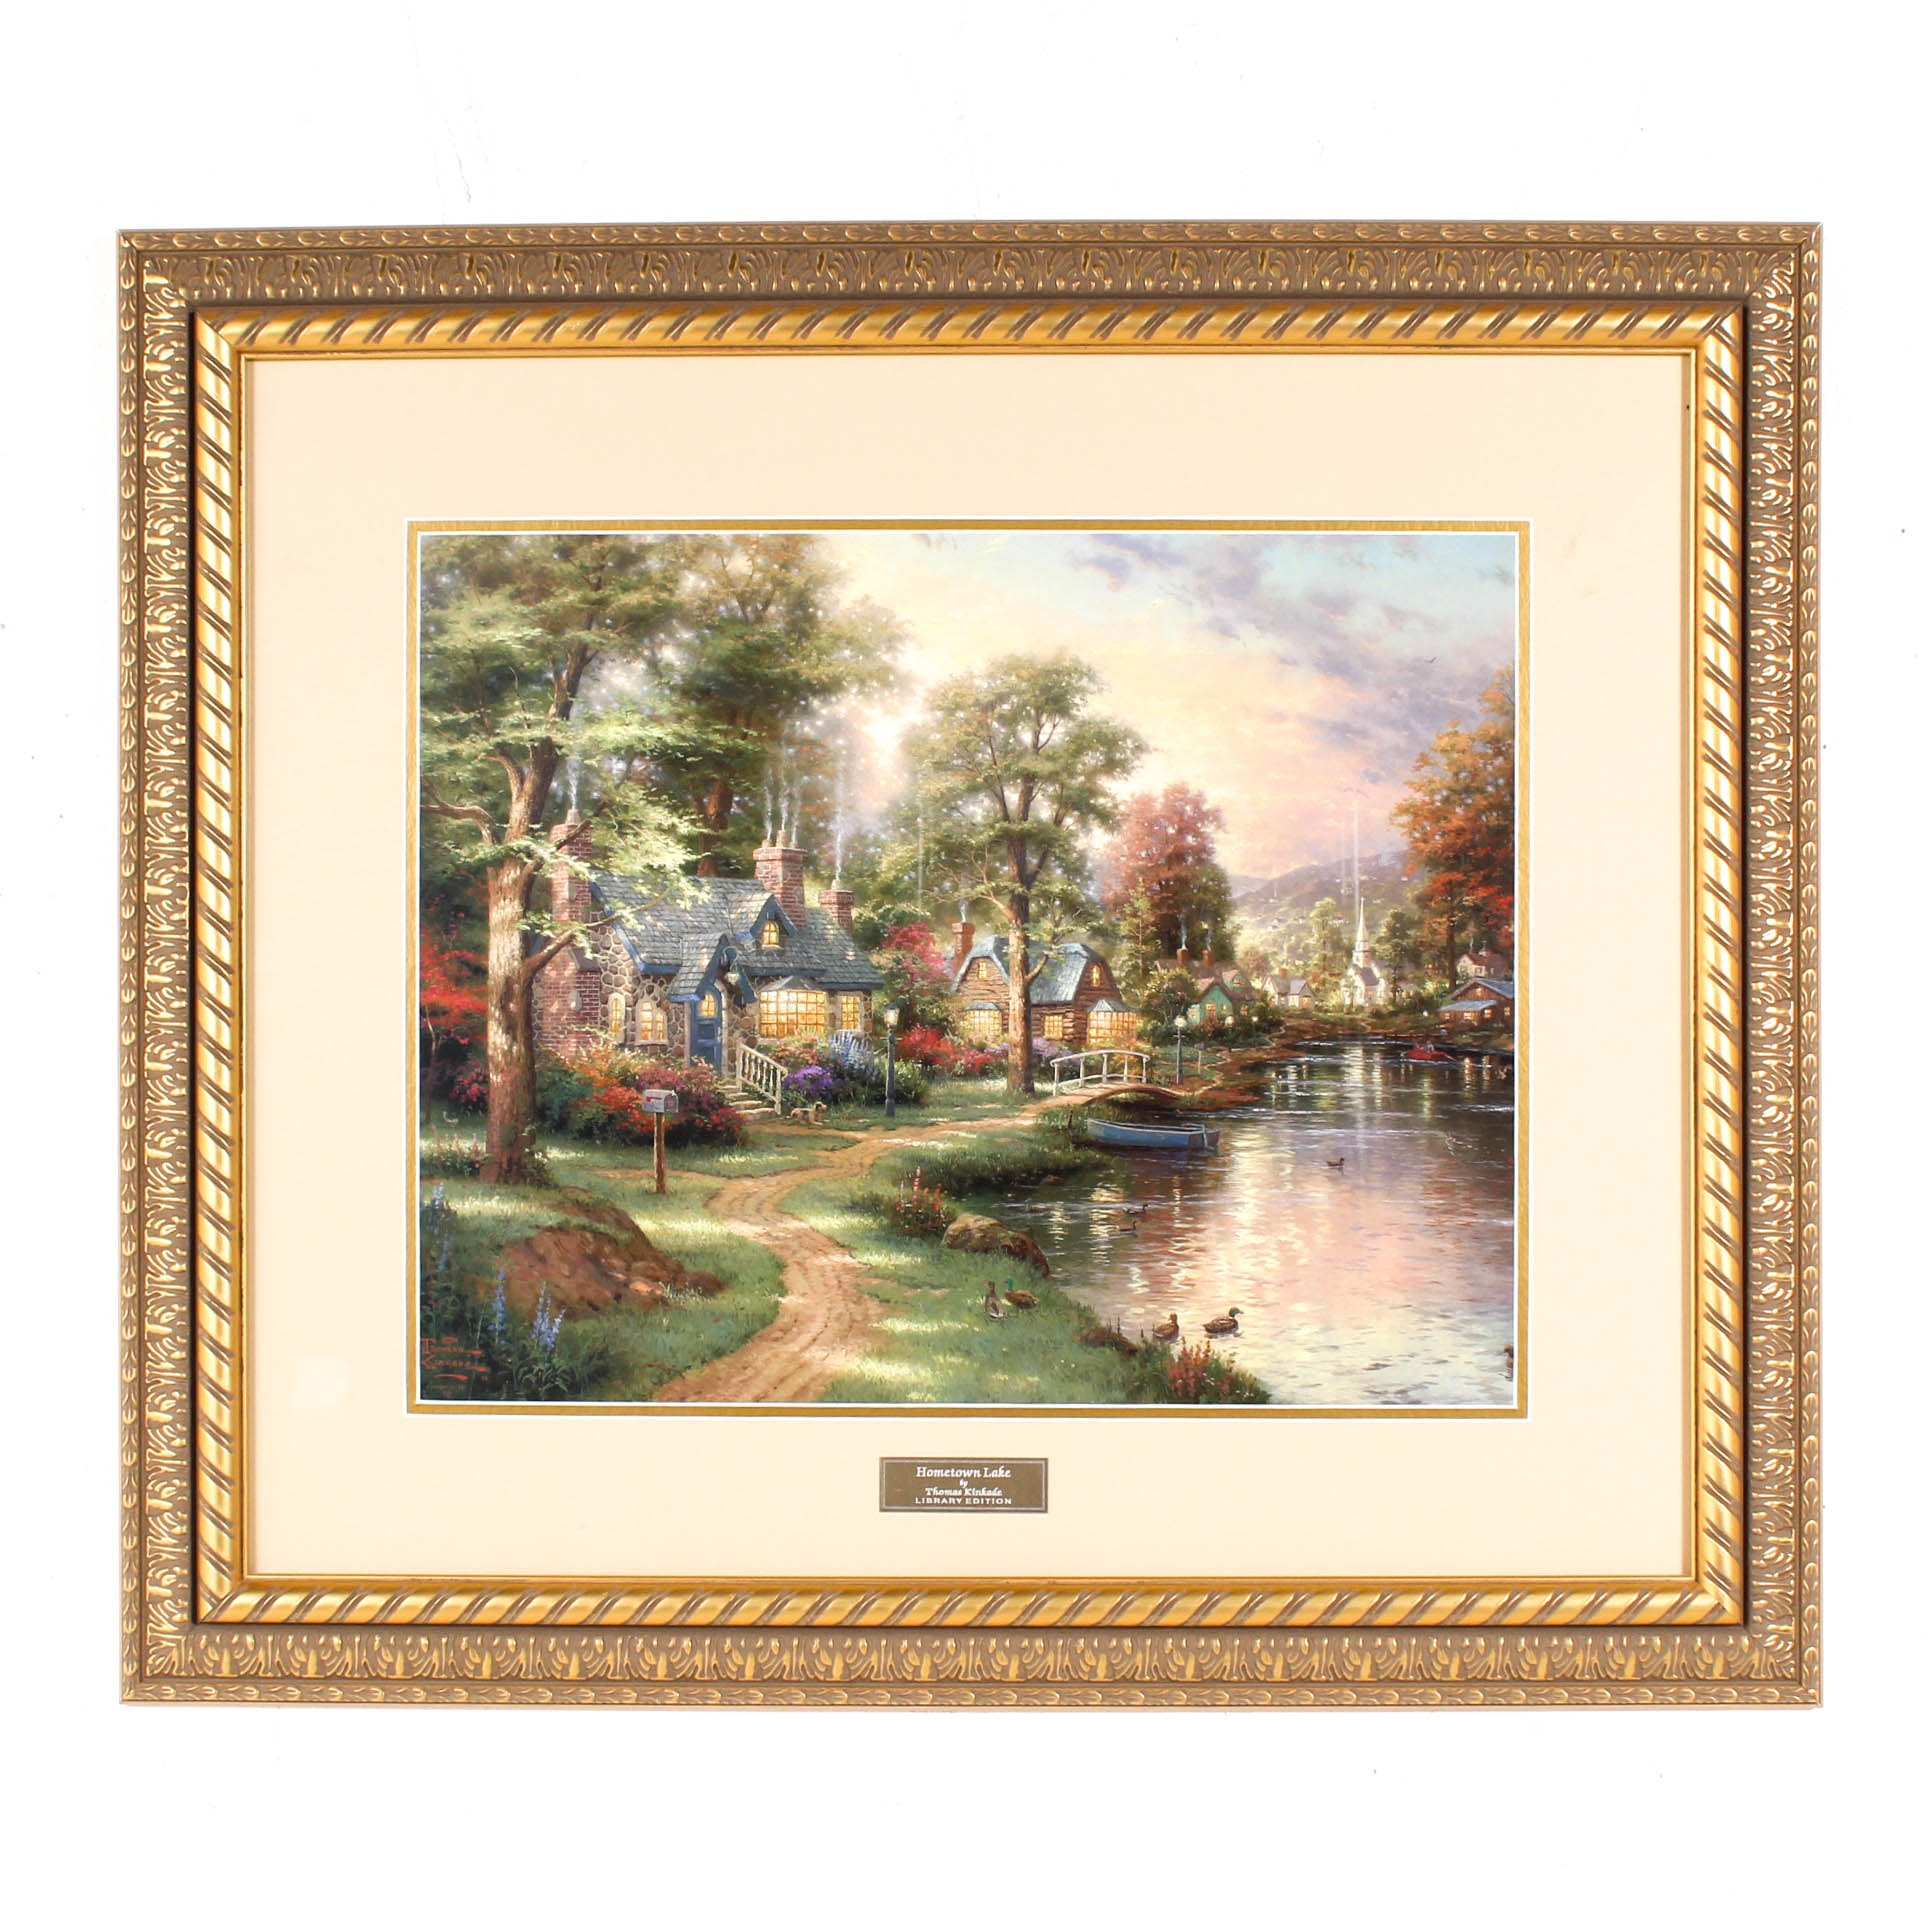 """Hometown Lake"" Library Edition Offset Lithograph After Thomas Kinkade"